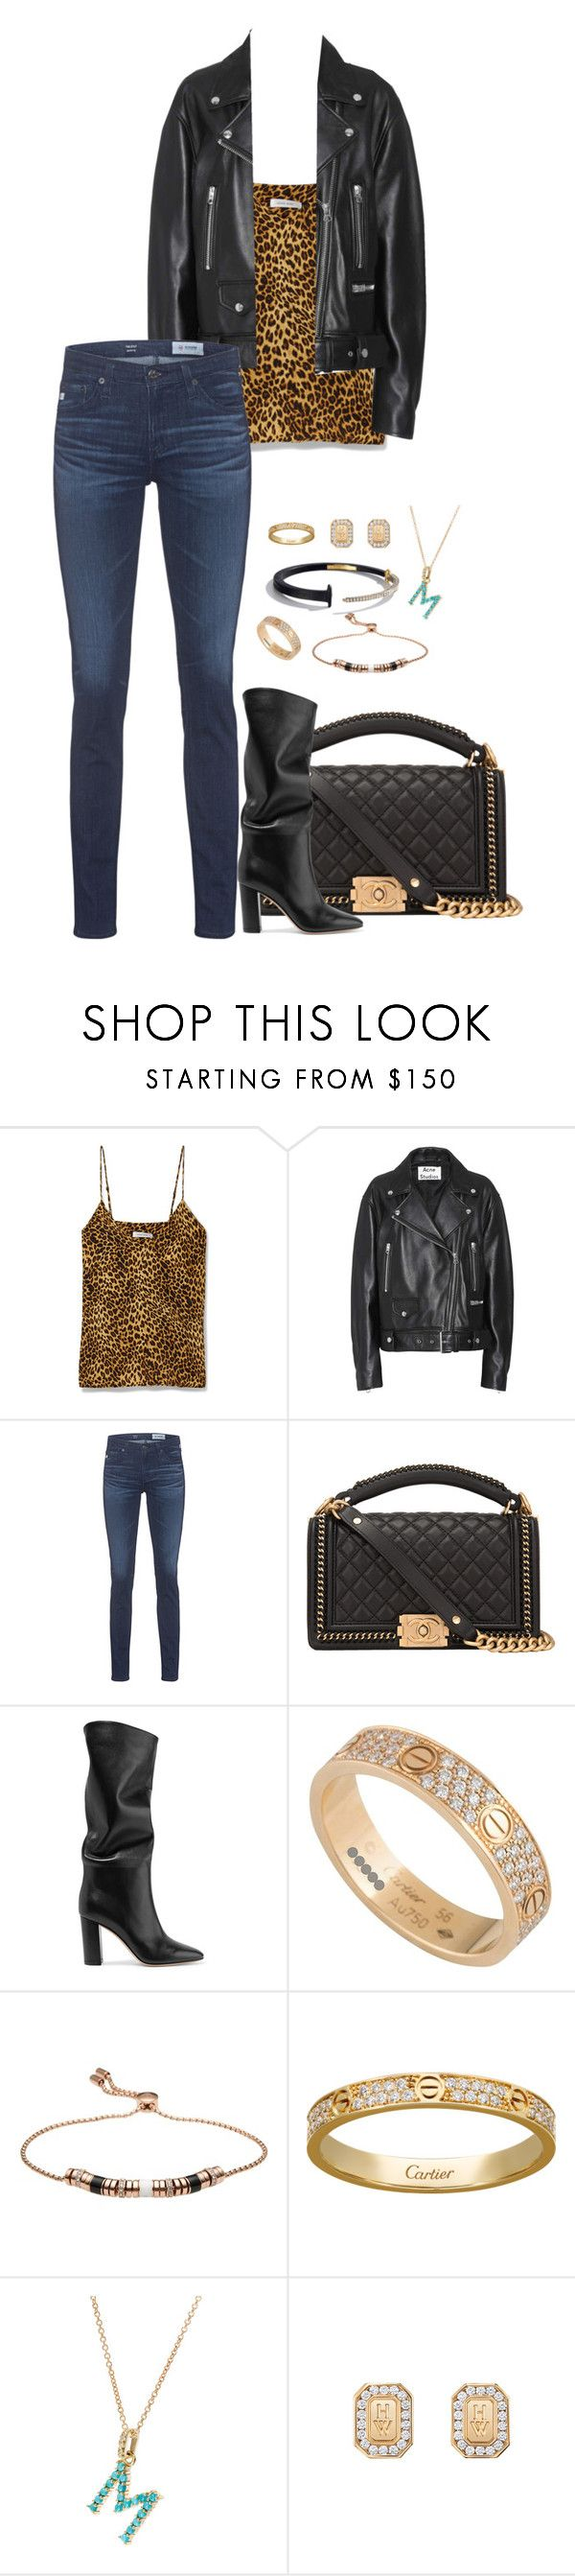 Untitled #3286 by moxfordf on Polyvore featuring Acne Studios, AG Adriano Goldschmied, Anine Bing, Gianvito Rossi, Chanel, Harry Winston, Emporio Armani, Cartier and Jennifer Meyer Jewelry